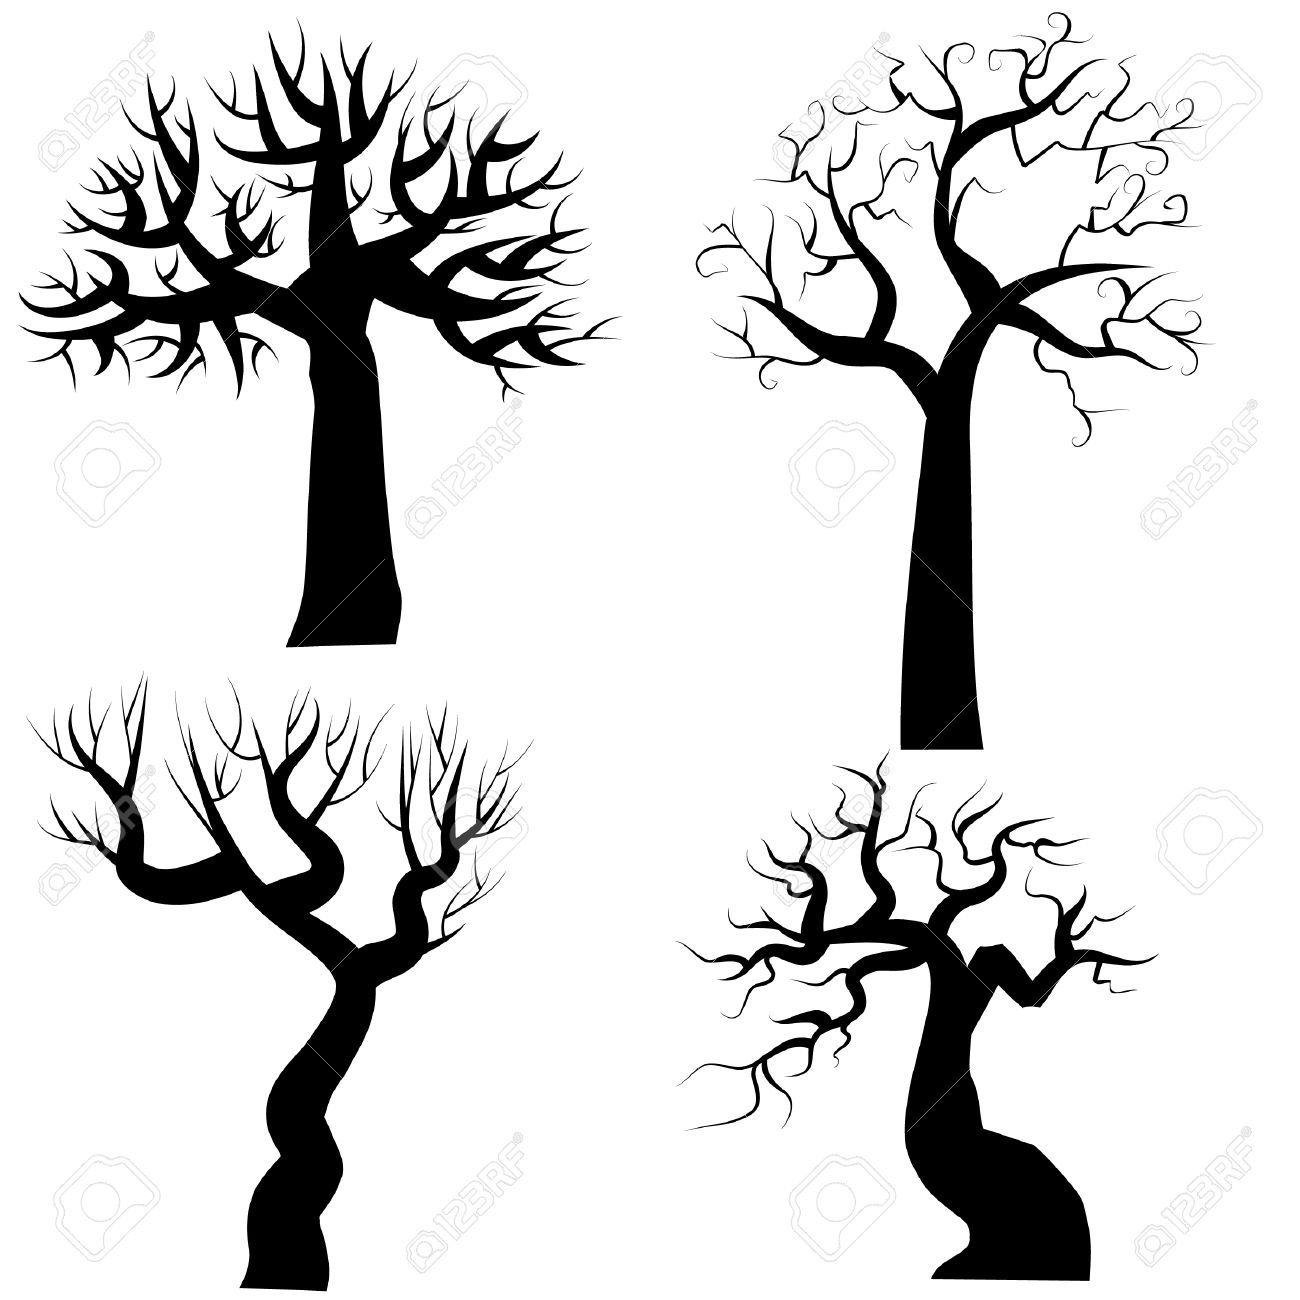 silhouettes of spooky halloween trees royalty free cliparts - Black Halloween Tree